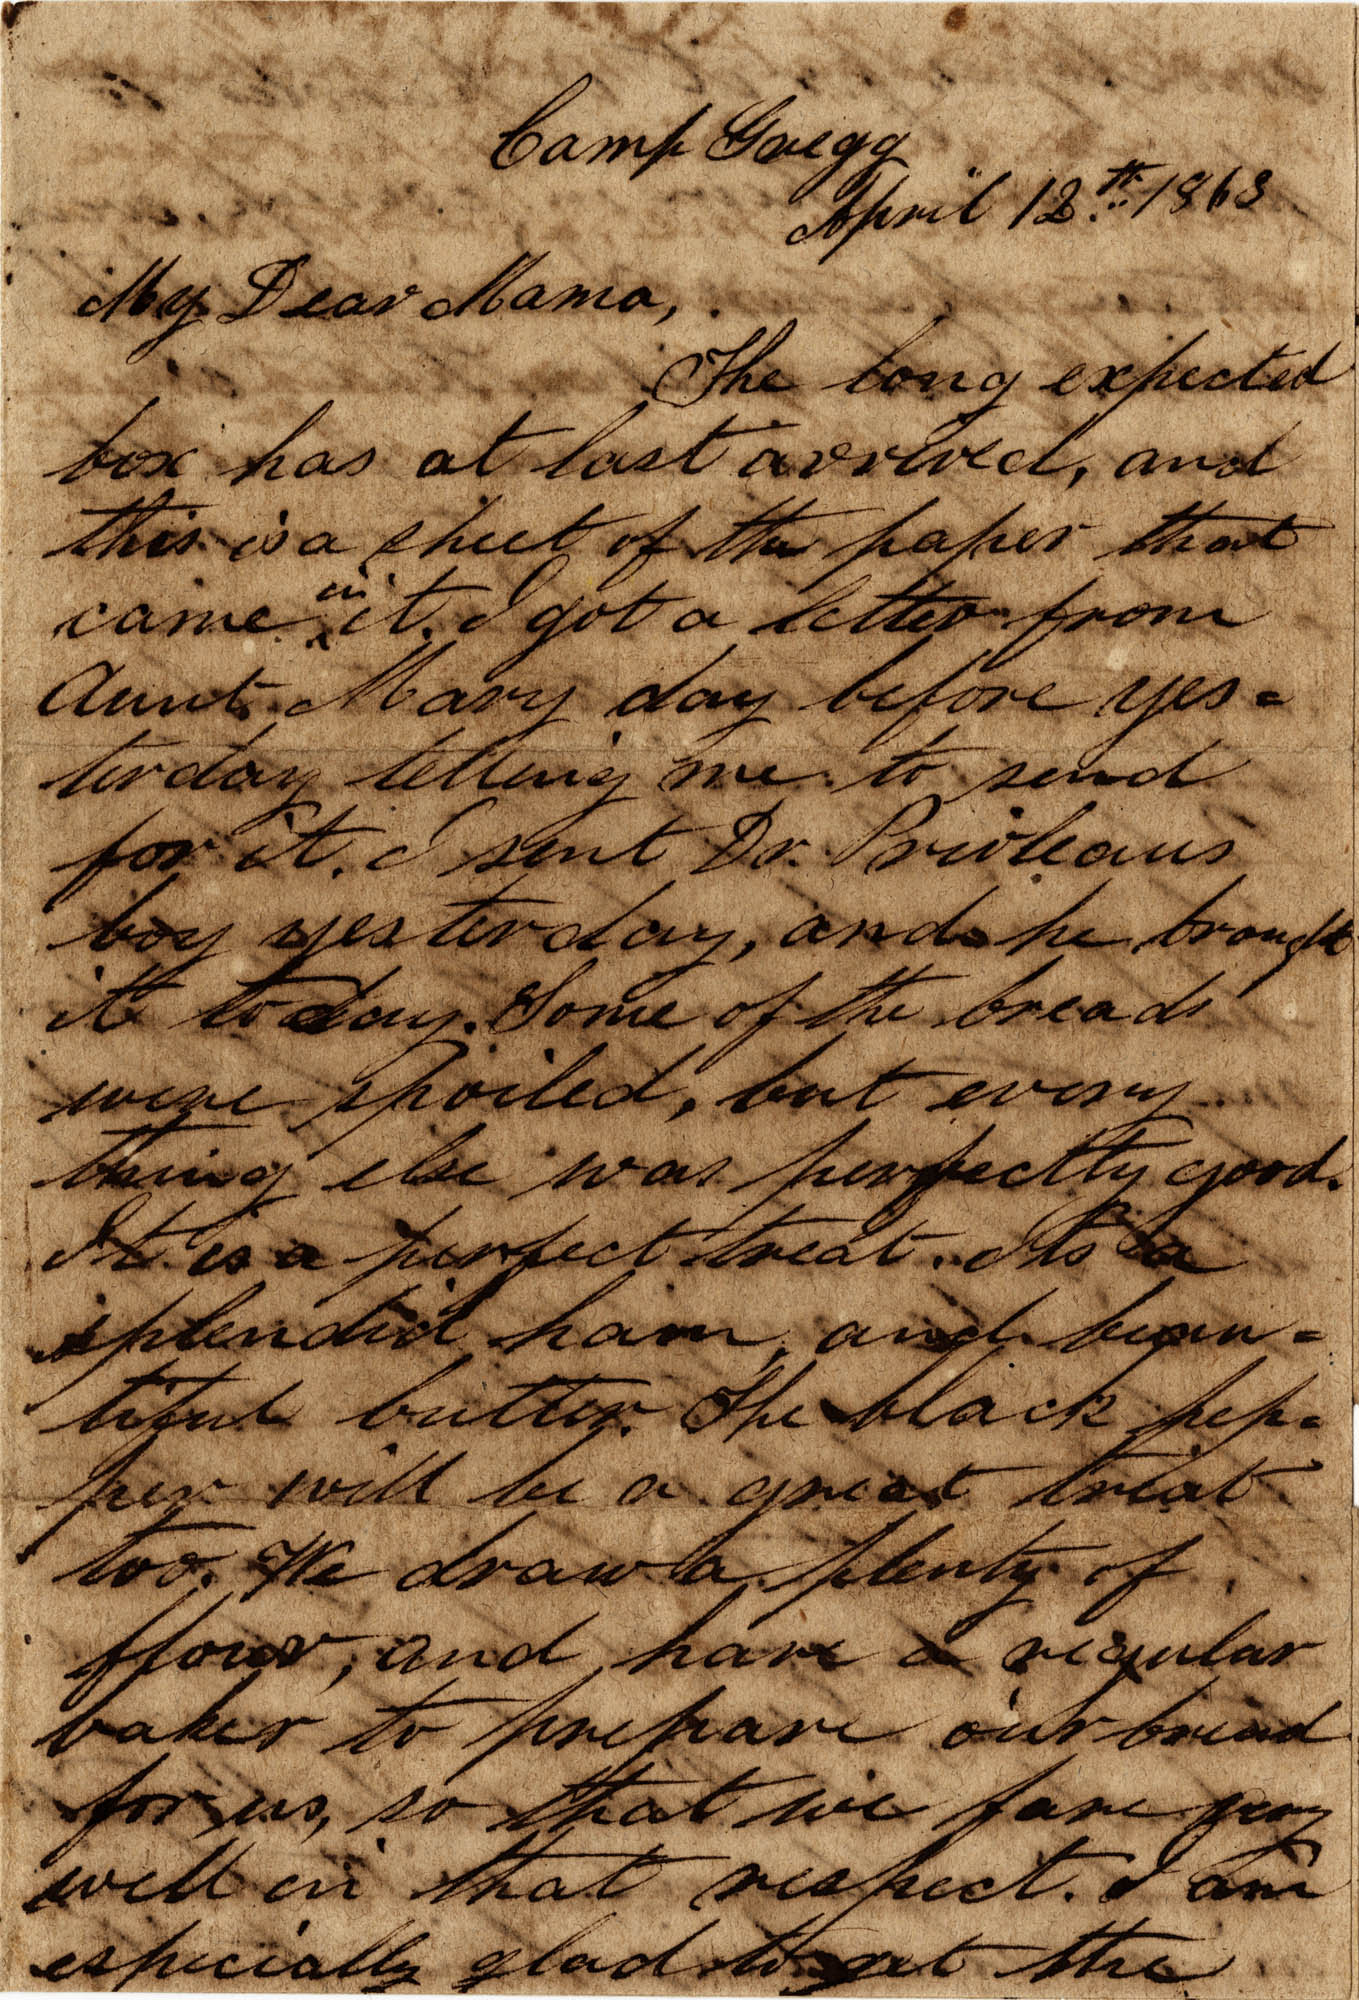 081. Willis Keith to Anna Bell Keith -- April 12, 1863